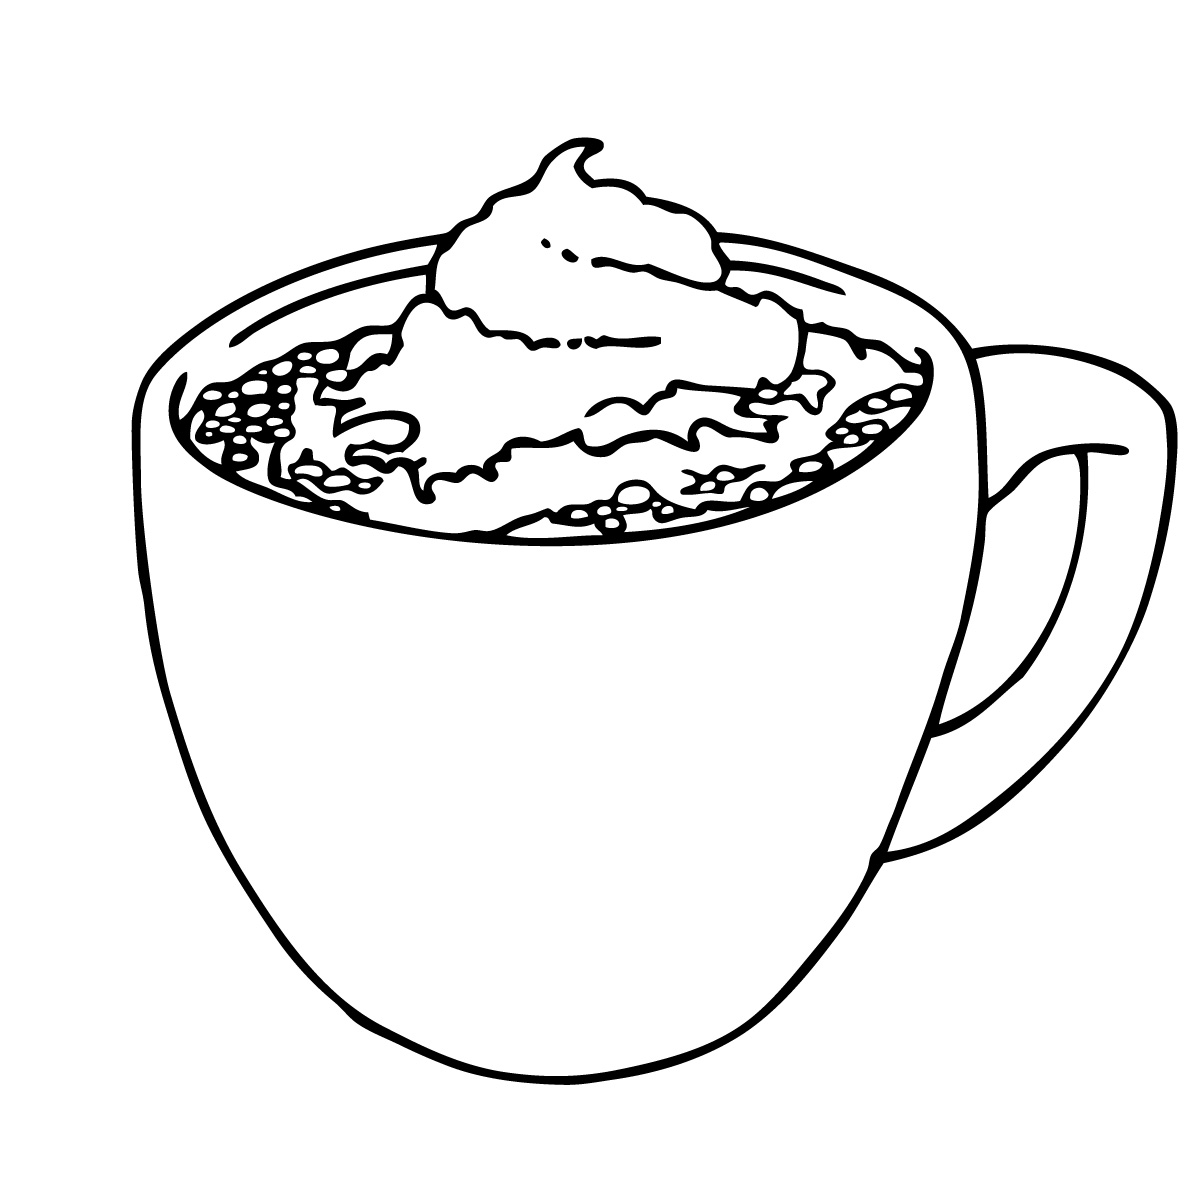 Hot chocolate clipart black and white clip free stock Hot Chocolate Clipart Black And White | Free download best ... clip free stock